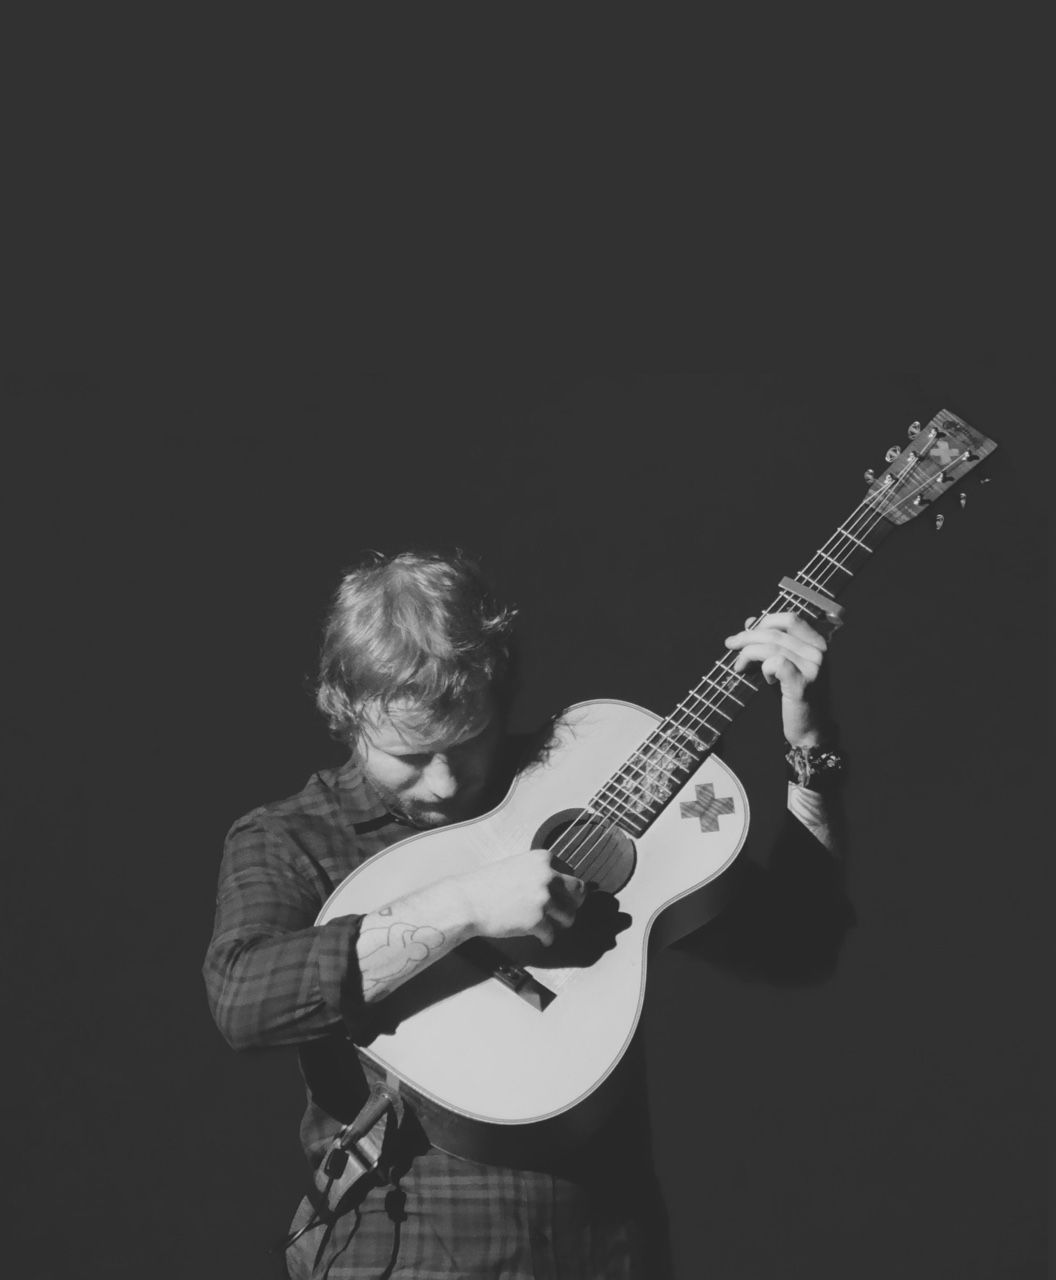 I want a man like Ed. He is kind, sweet, and puts others before himself. He is an amazing person who just wants to help :)